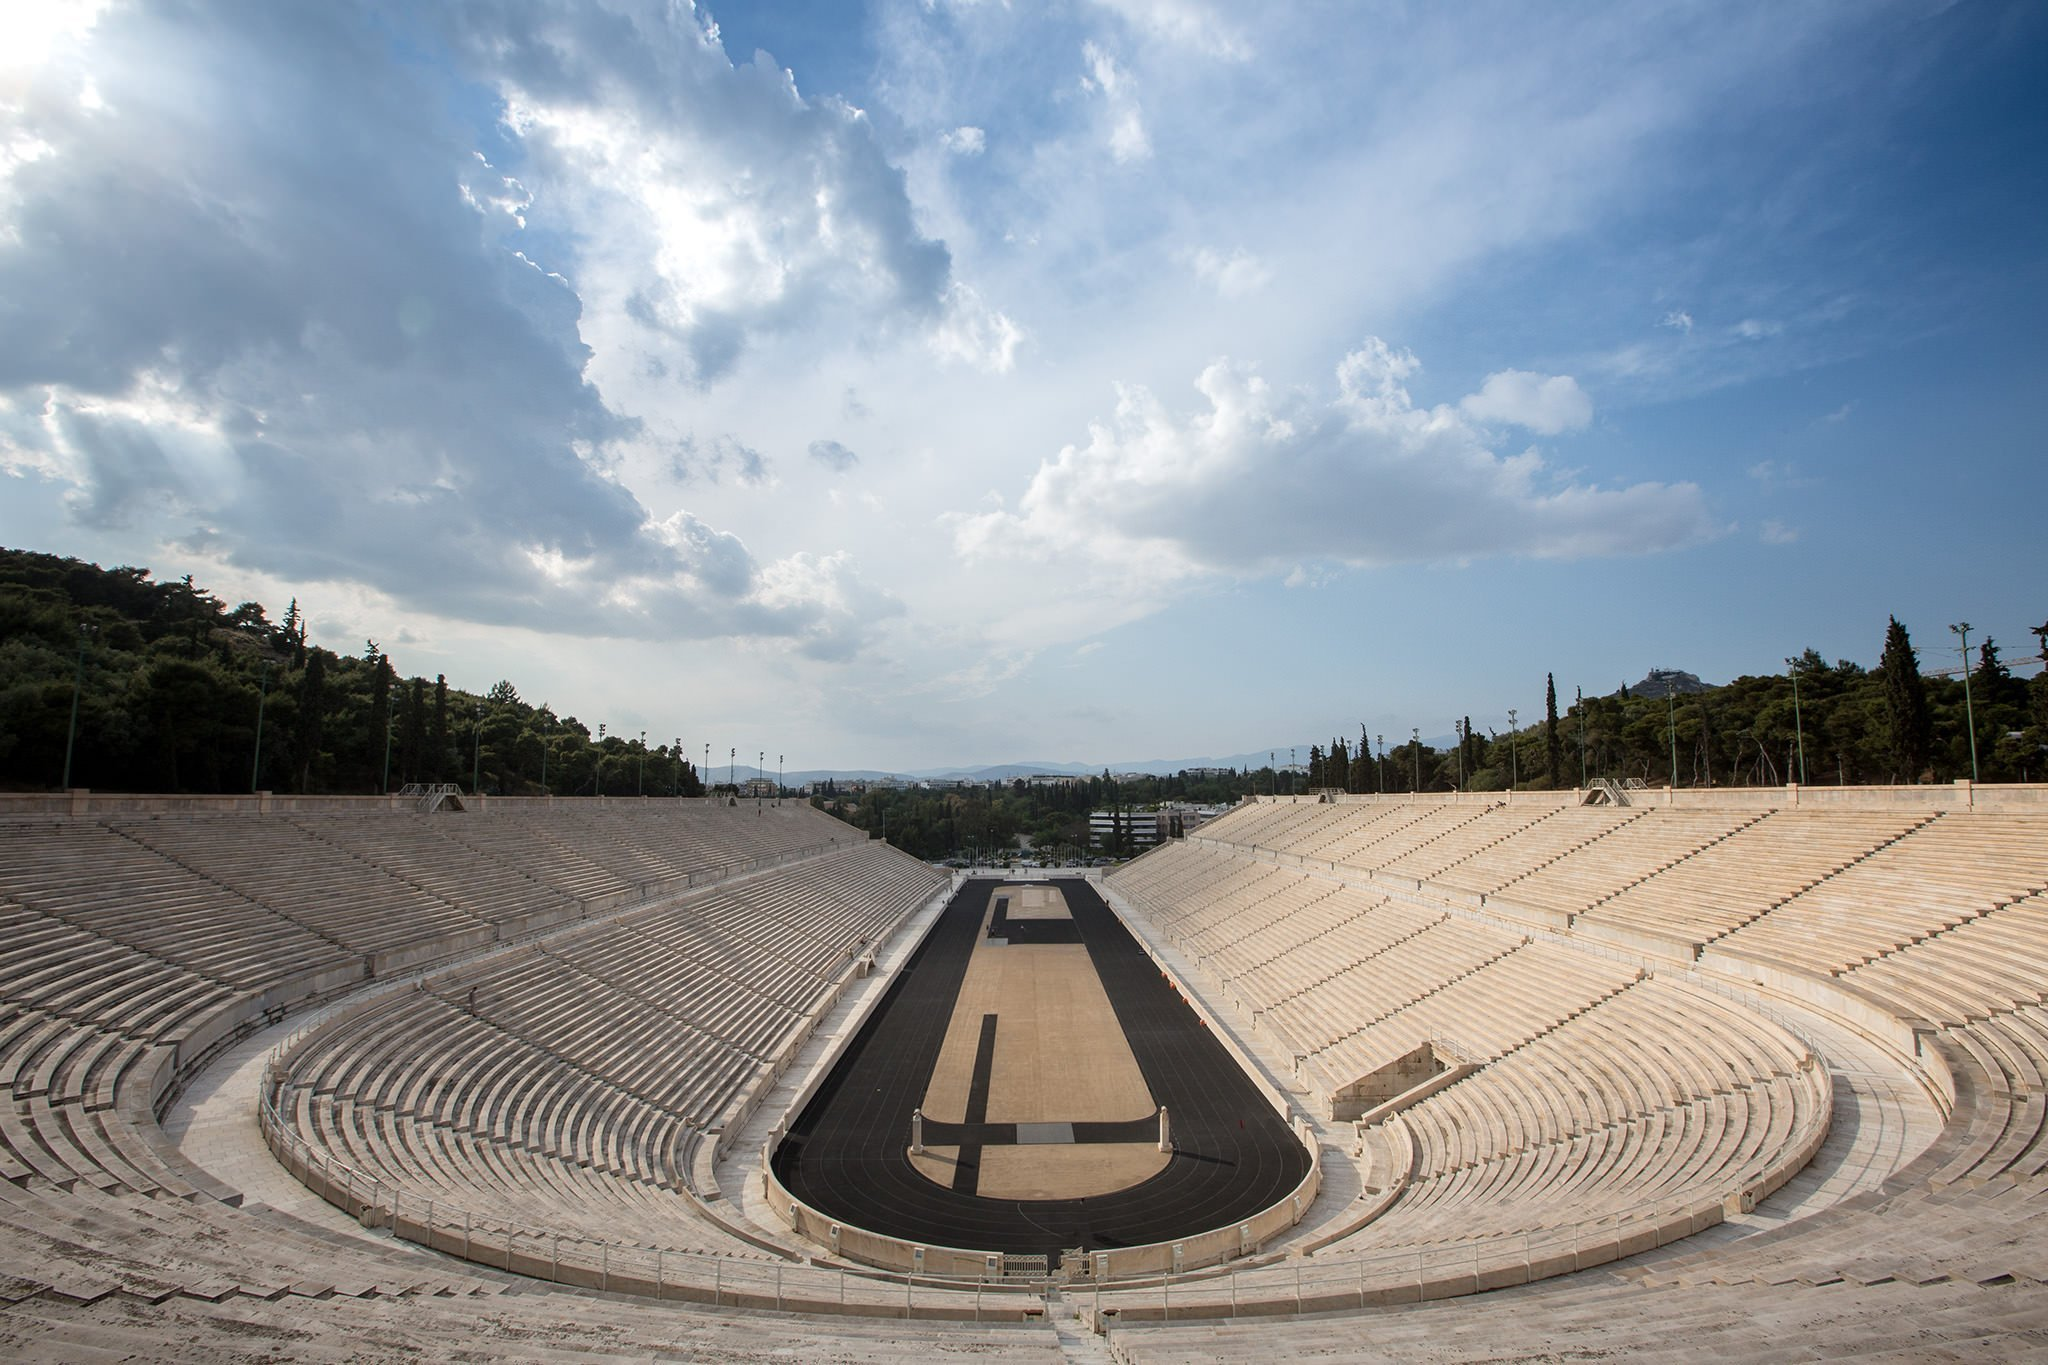 Daily Athens Photography Tour - Panathinaikon stadium